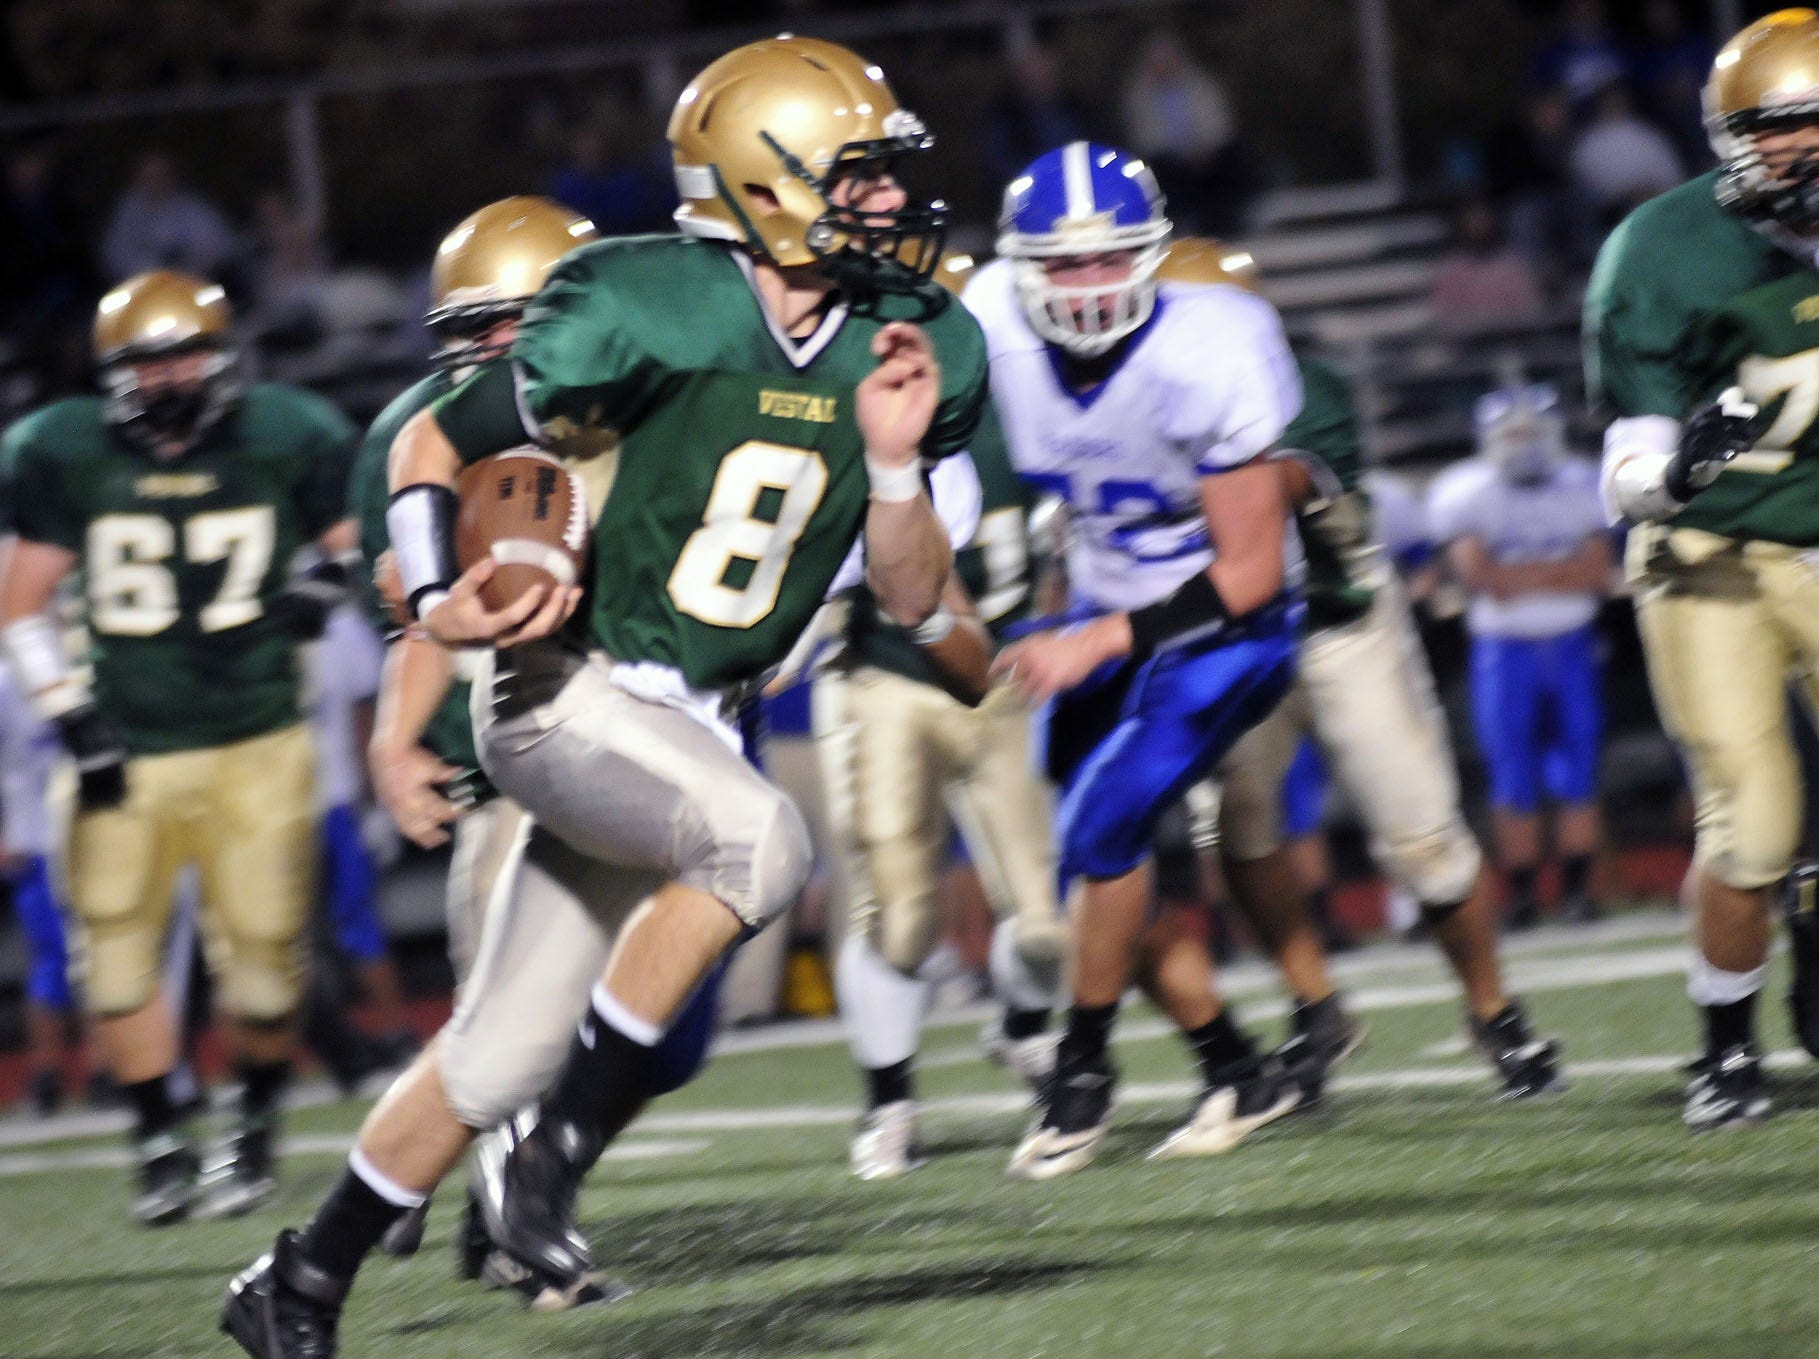 In 2012, Vestal quarterback Nick Wegmann picks up 6 yards against Horseheads.